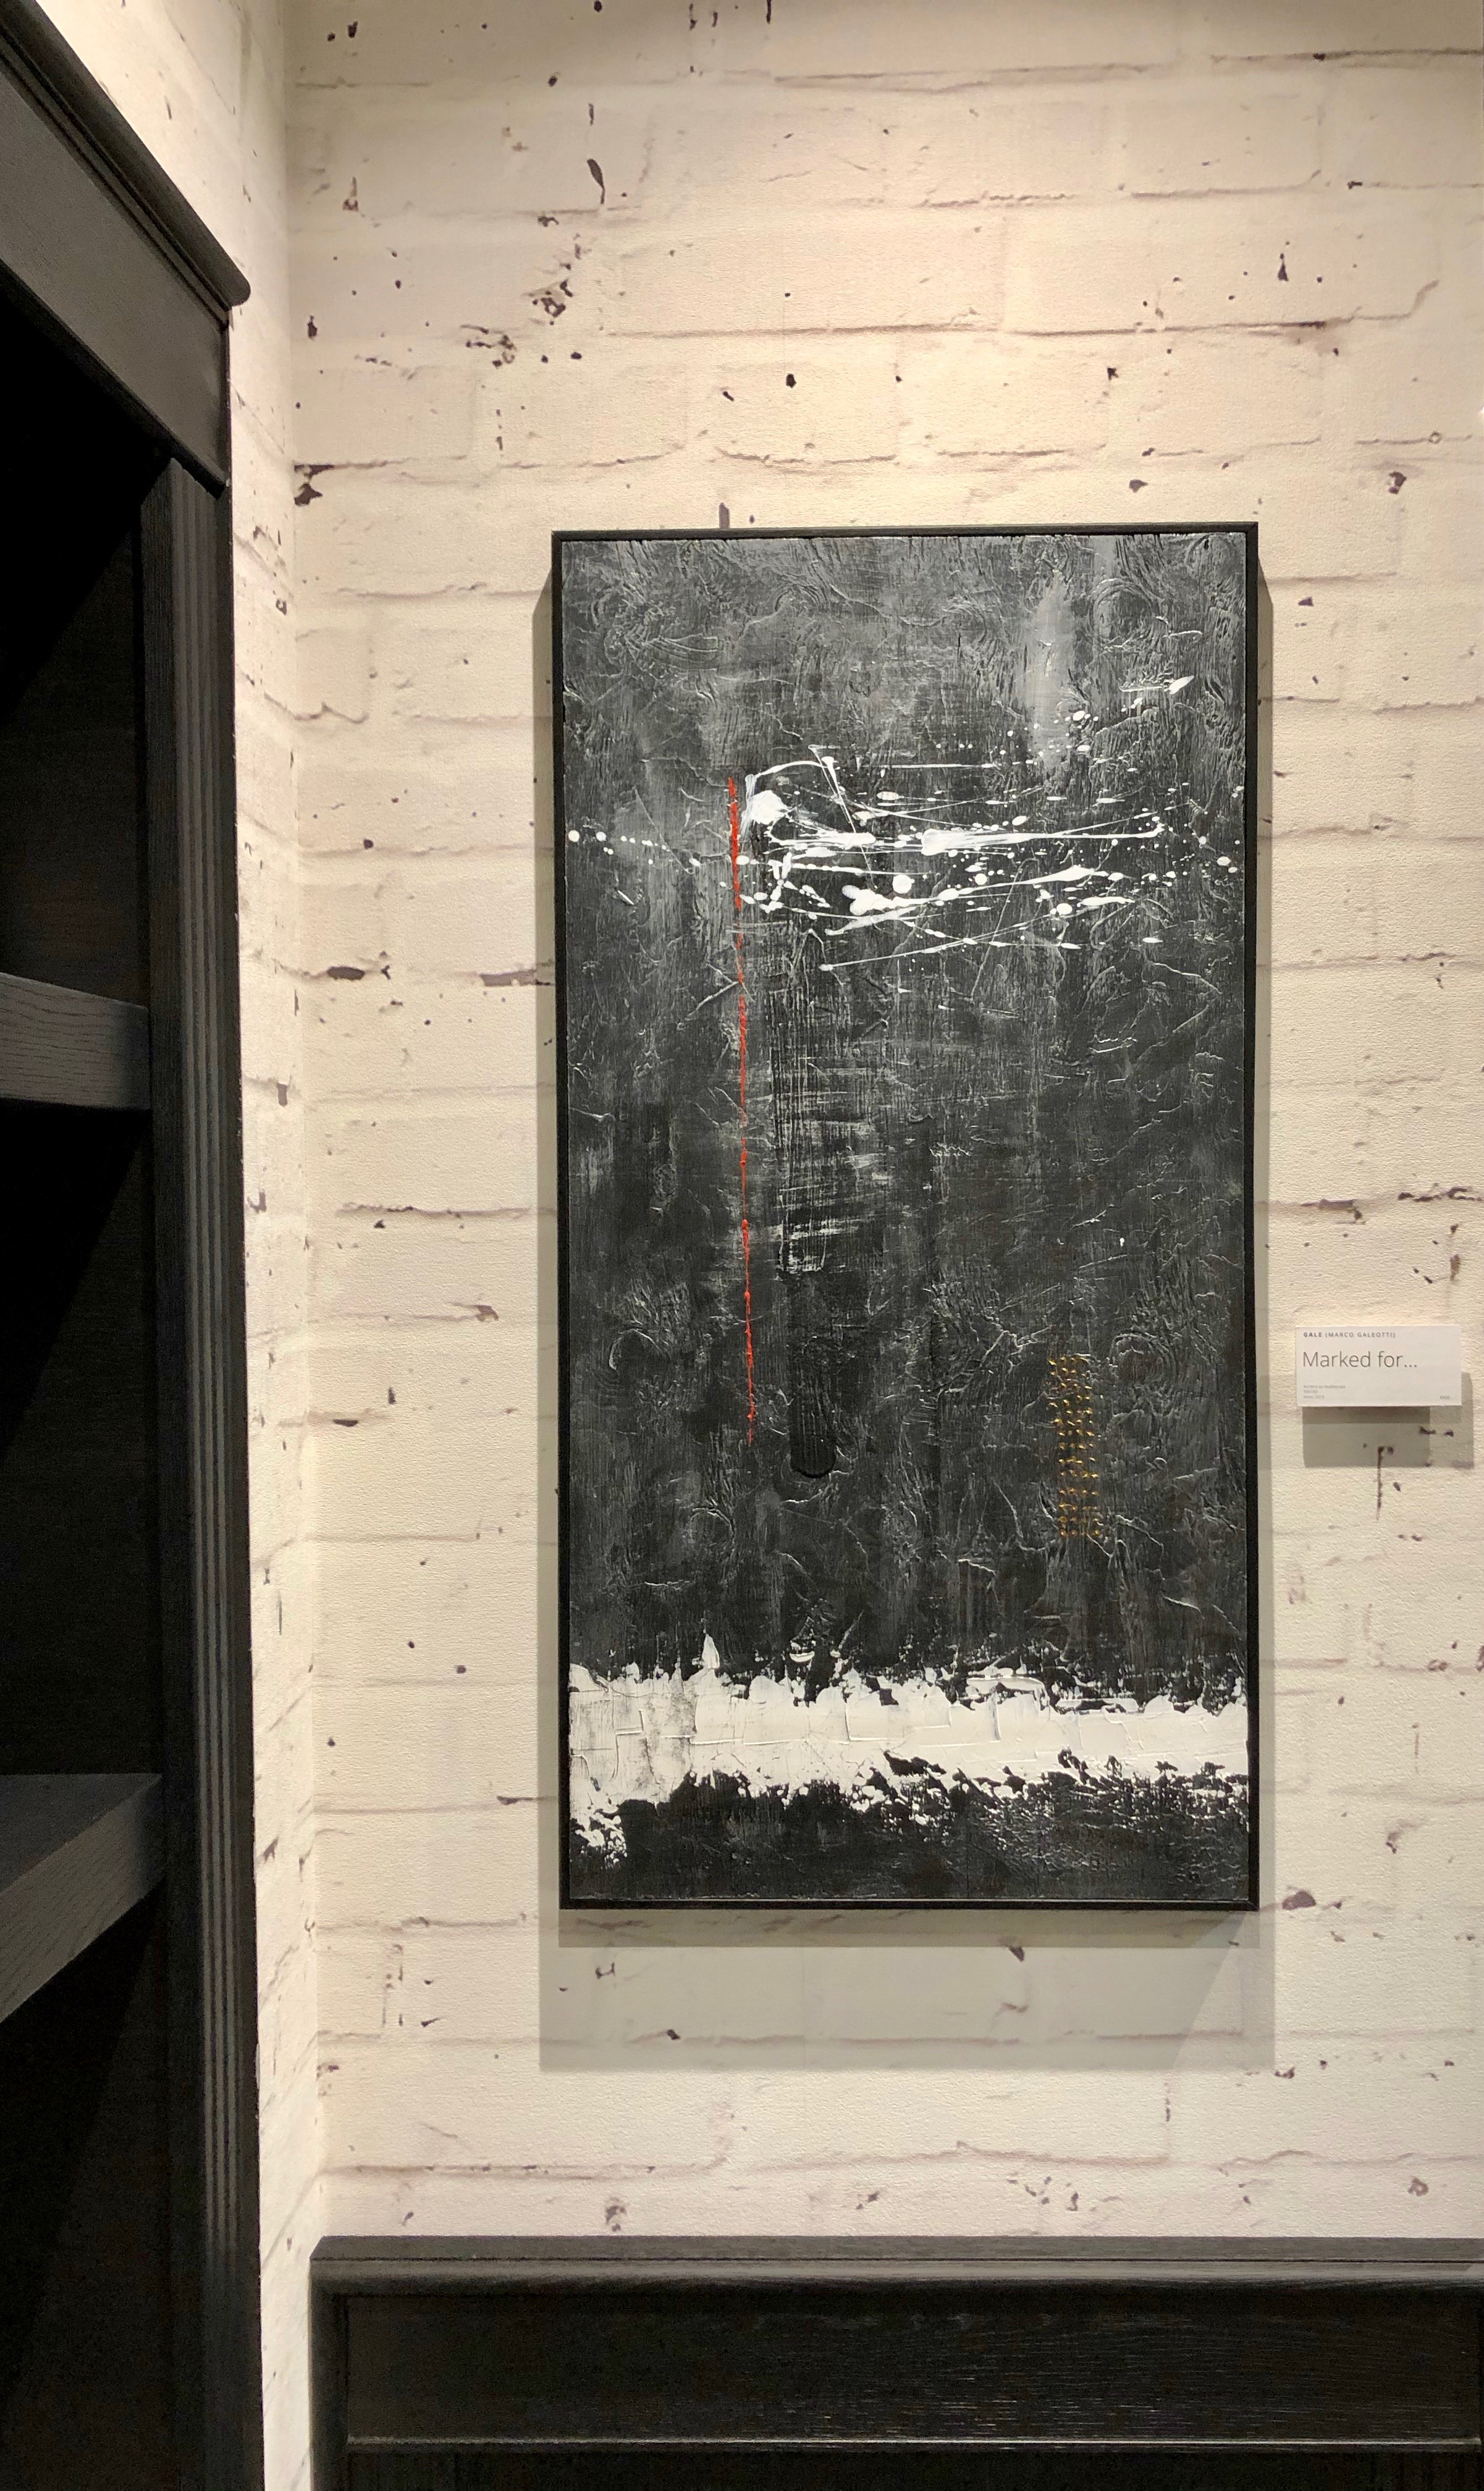 MARKED FOR... - Acrylic on 8mm plywood, 50x100cm, framed - AVAILABLE